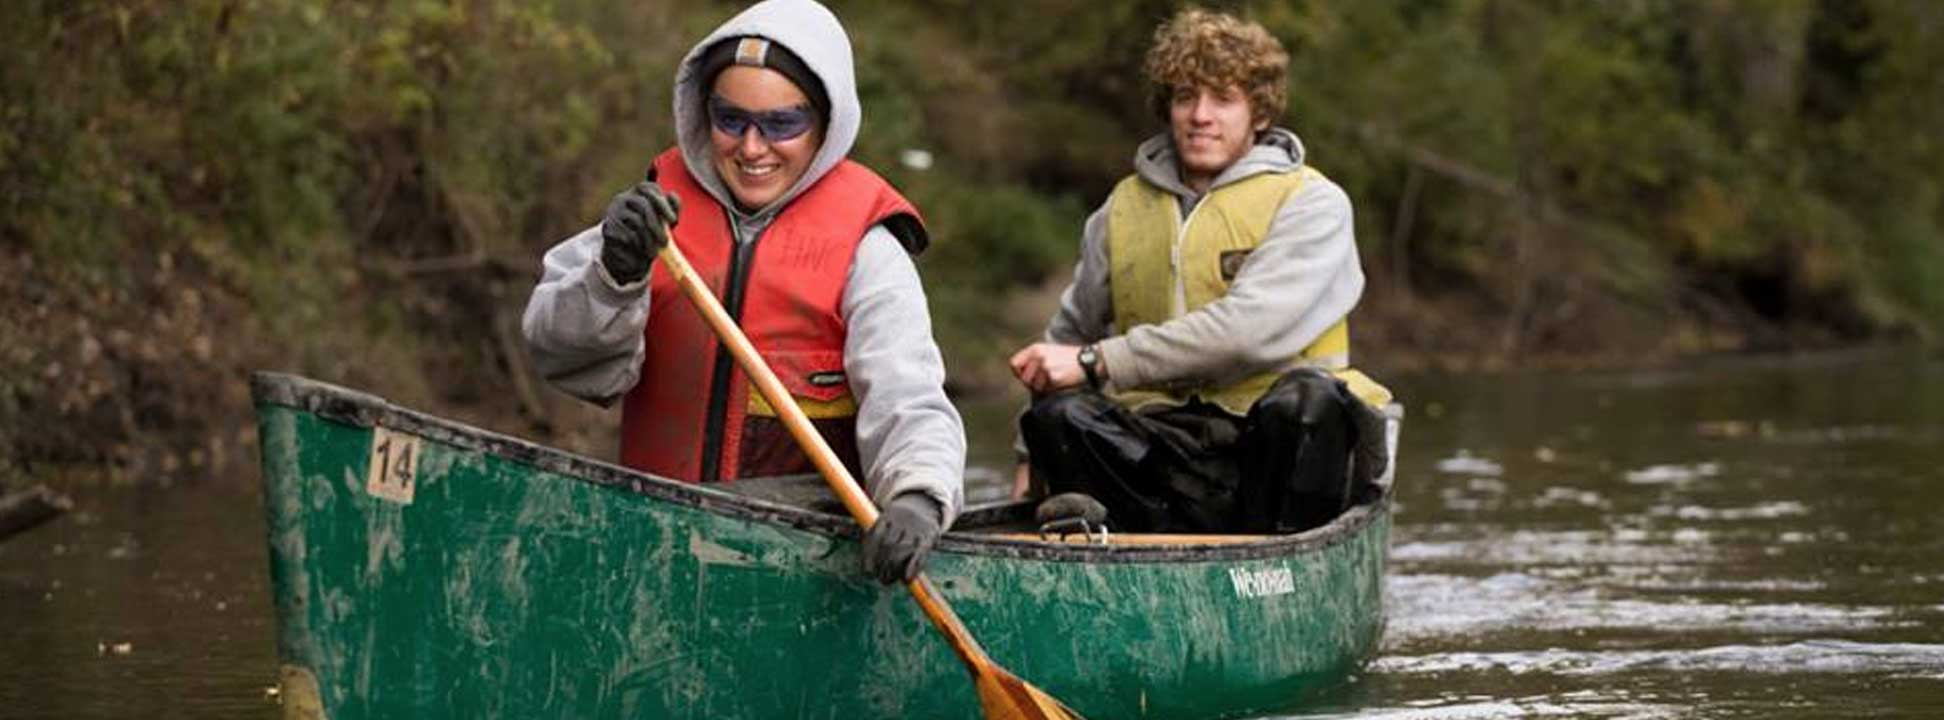 Discover Austin Canoeing